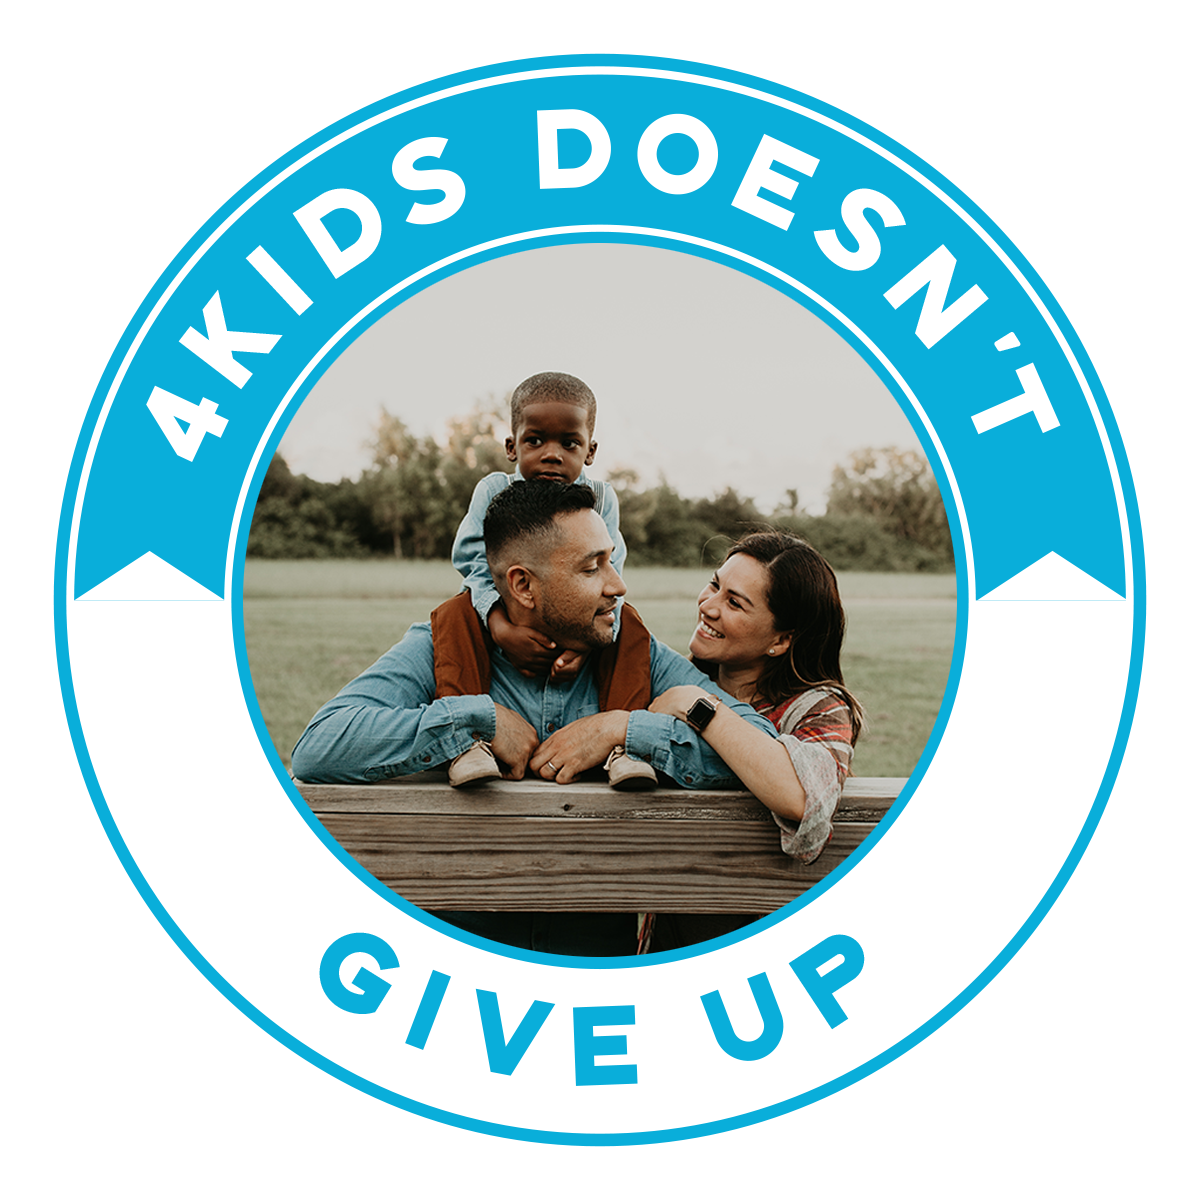 4Kids families don't give up